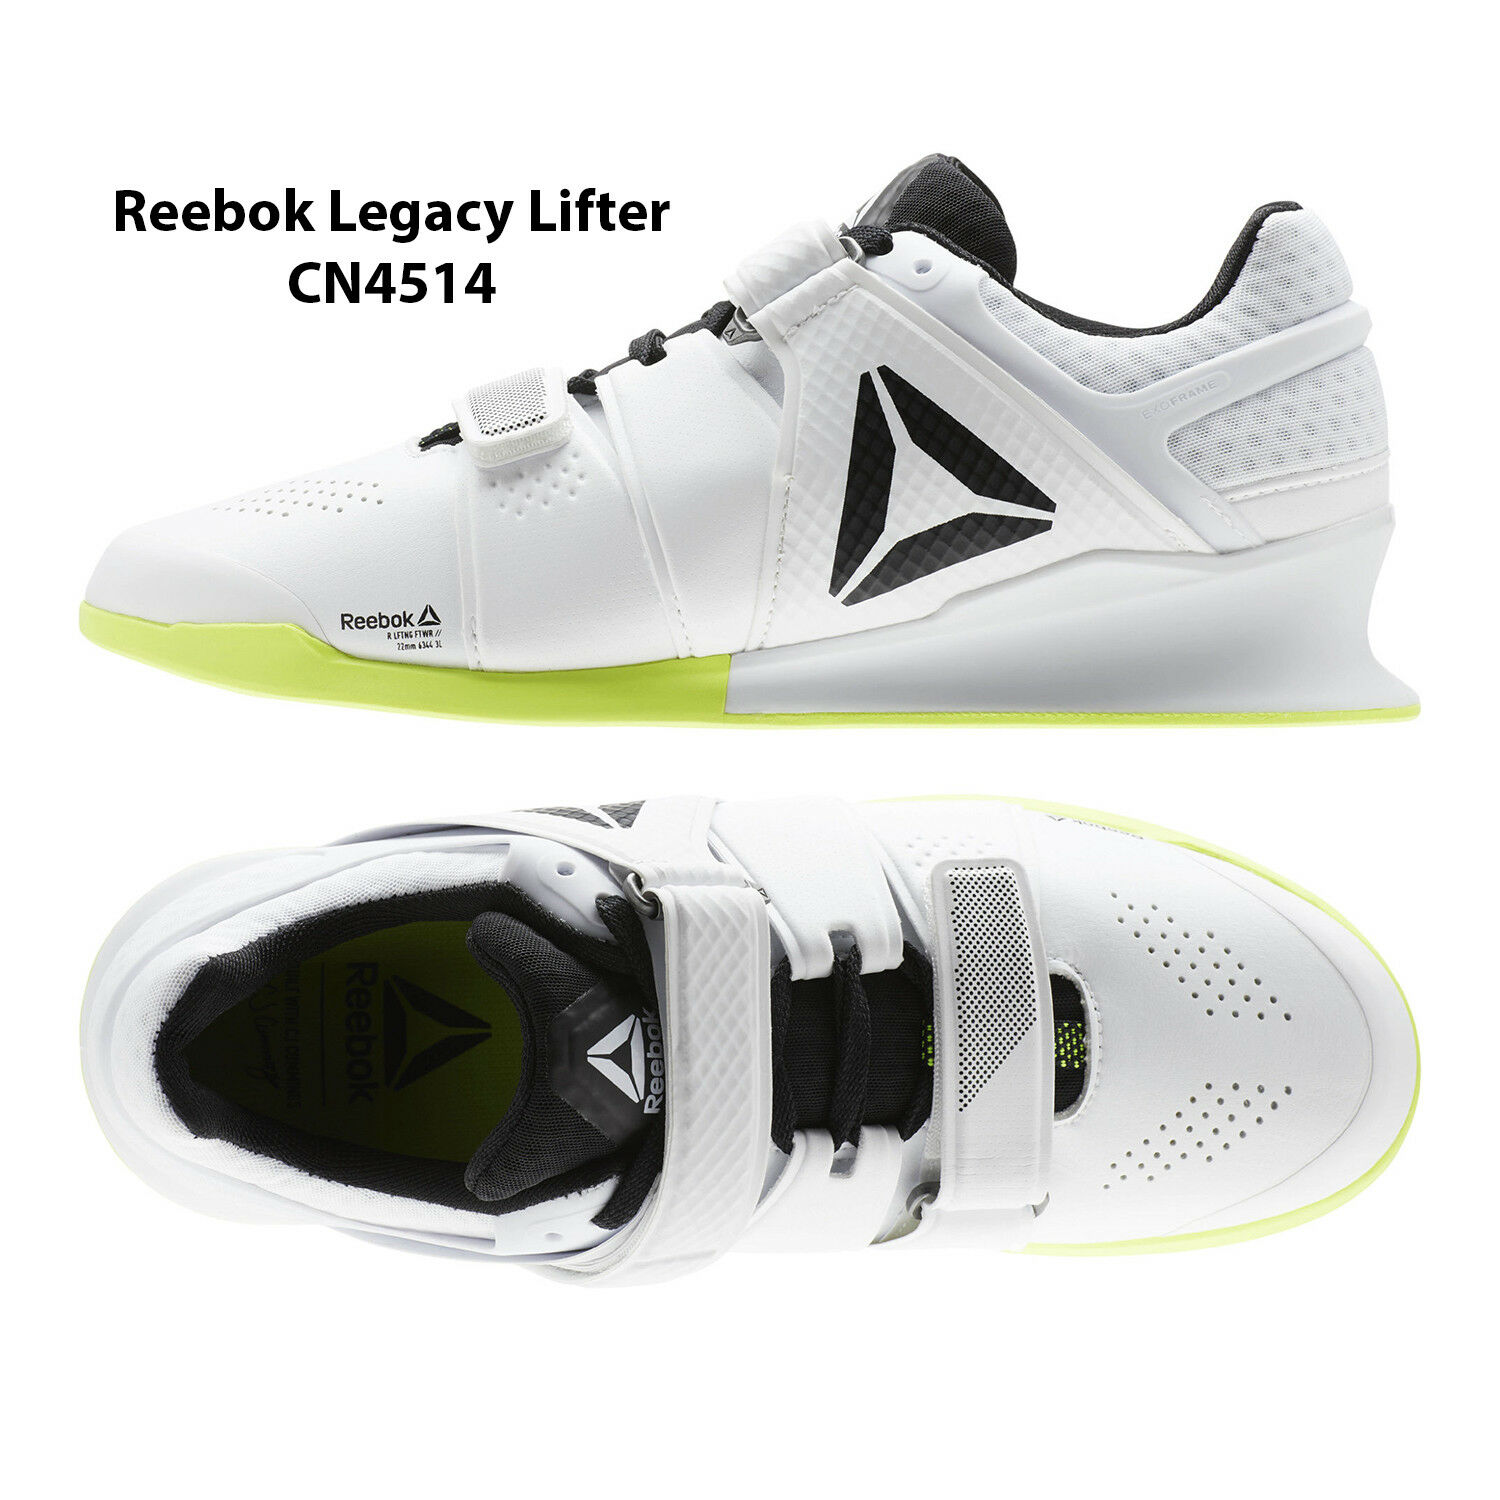 Mens Reebok Legacy Lifter White Crossfit shoes Reebok CN4514 shoes NEW